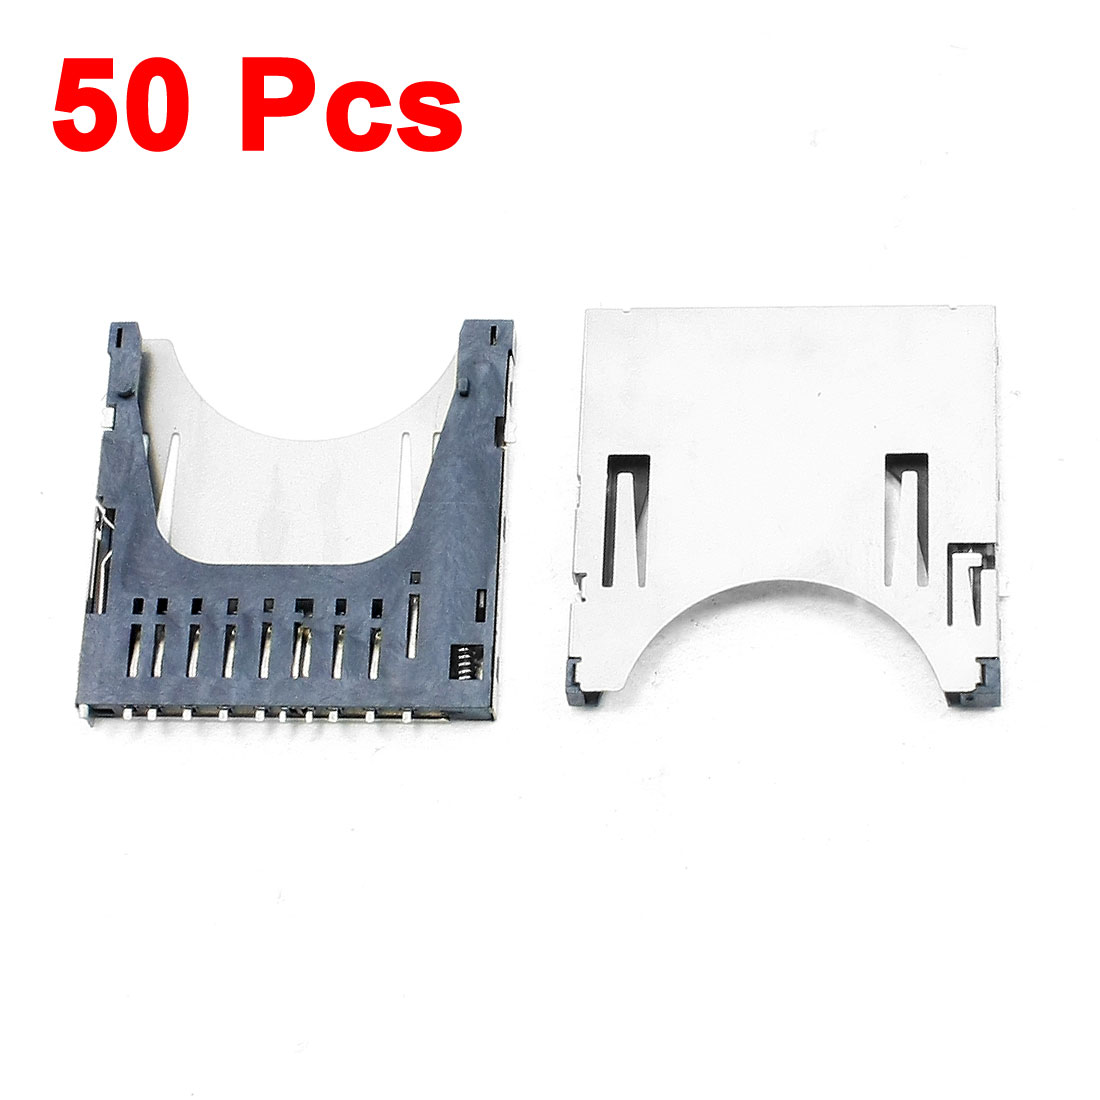 50Pcs SD Card Sockets Connectors Replacements 29 x 28.5 x 2.5mm